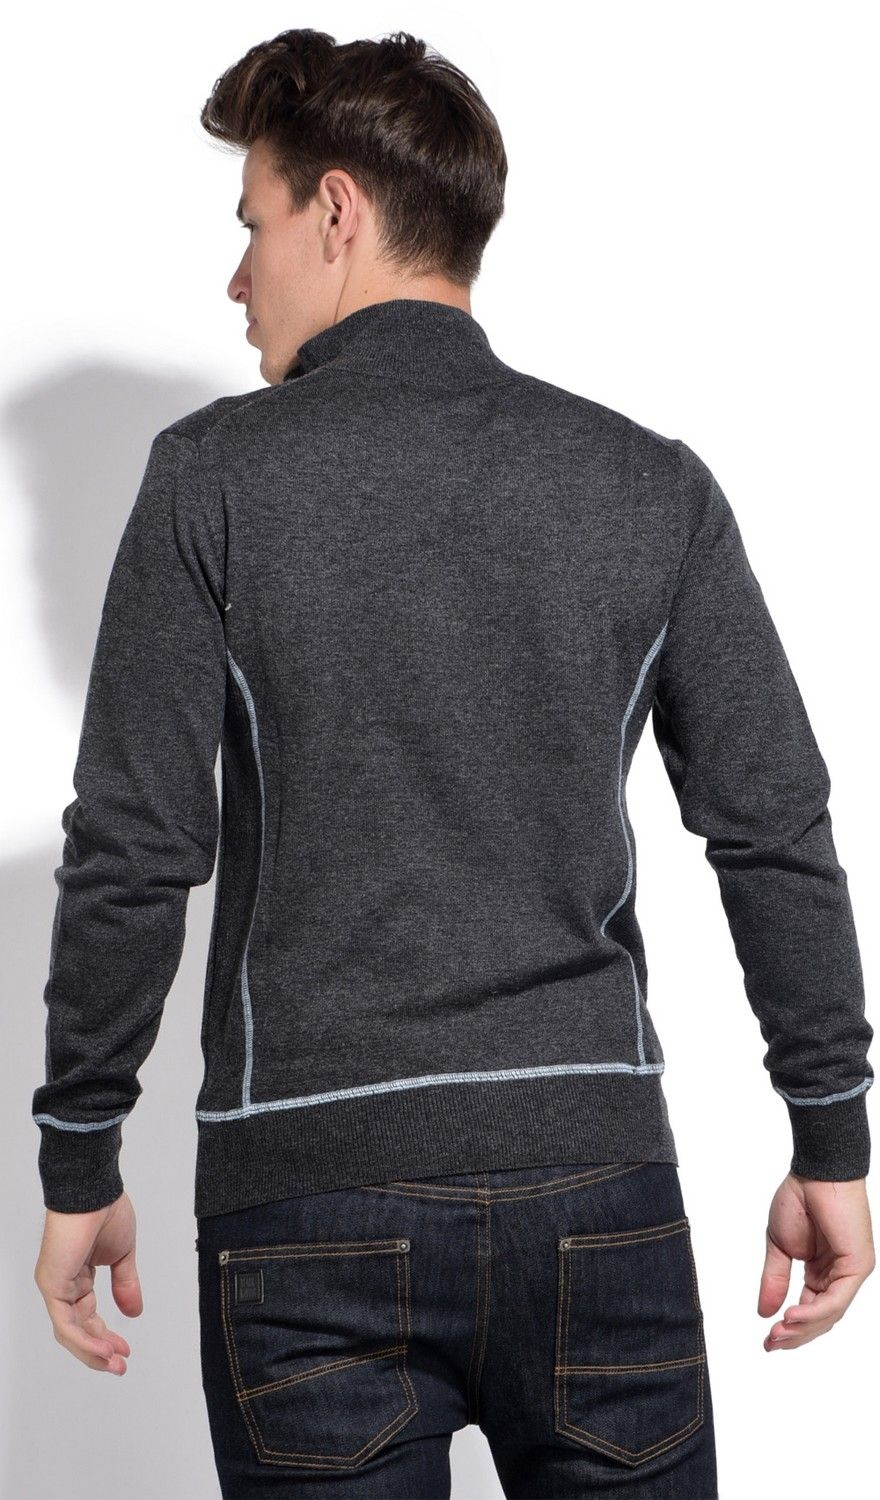 William De Faye High Neck Sweater with Buttons and Contrast Stitching in Grey